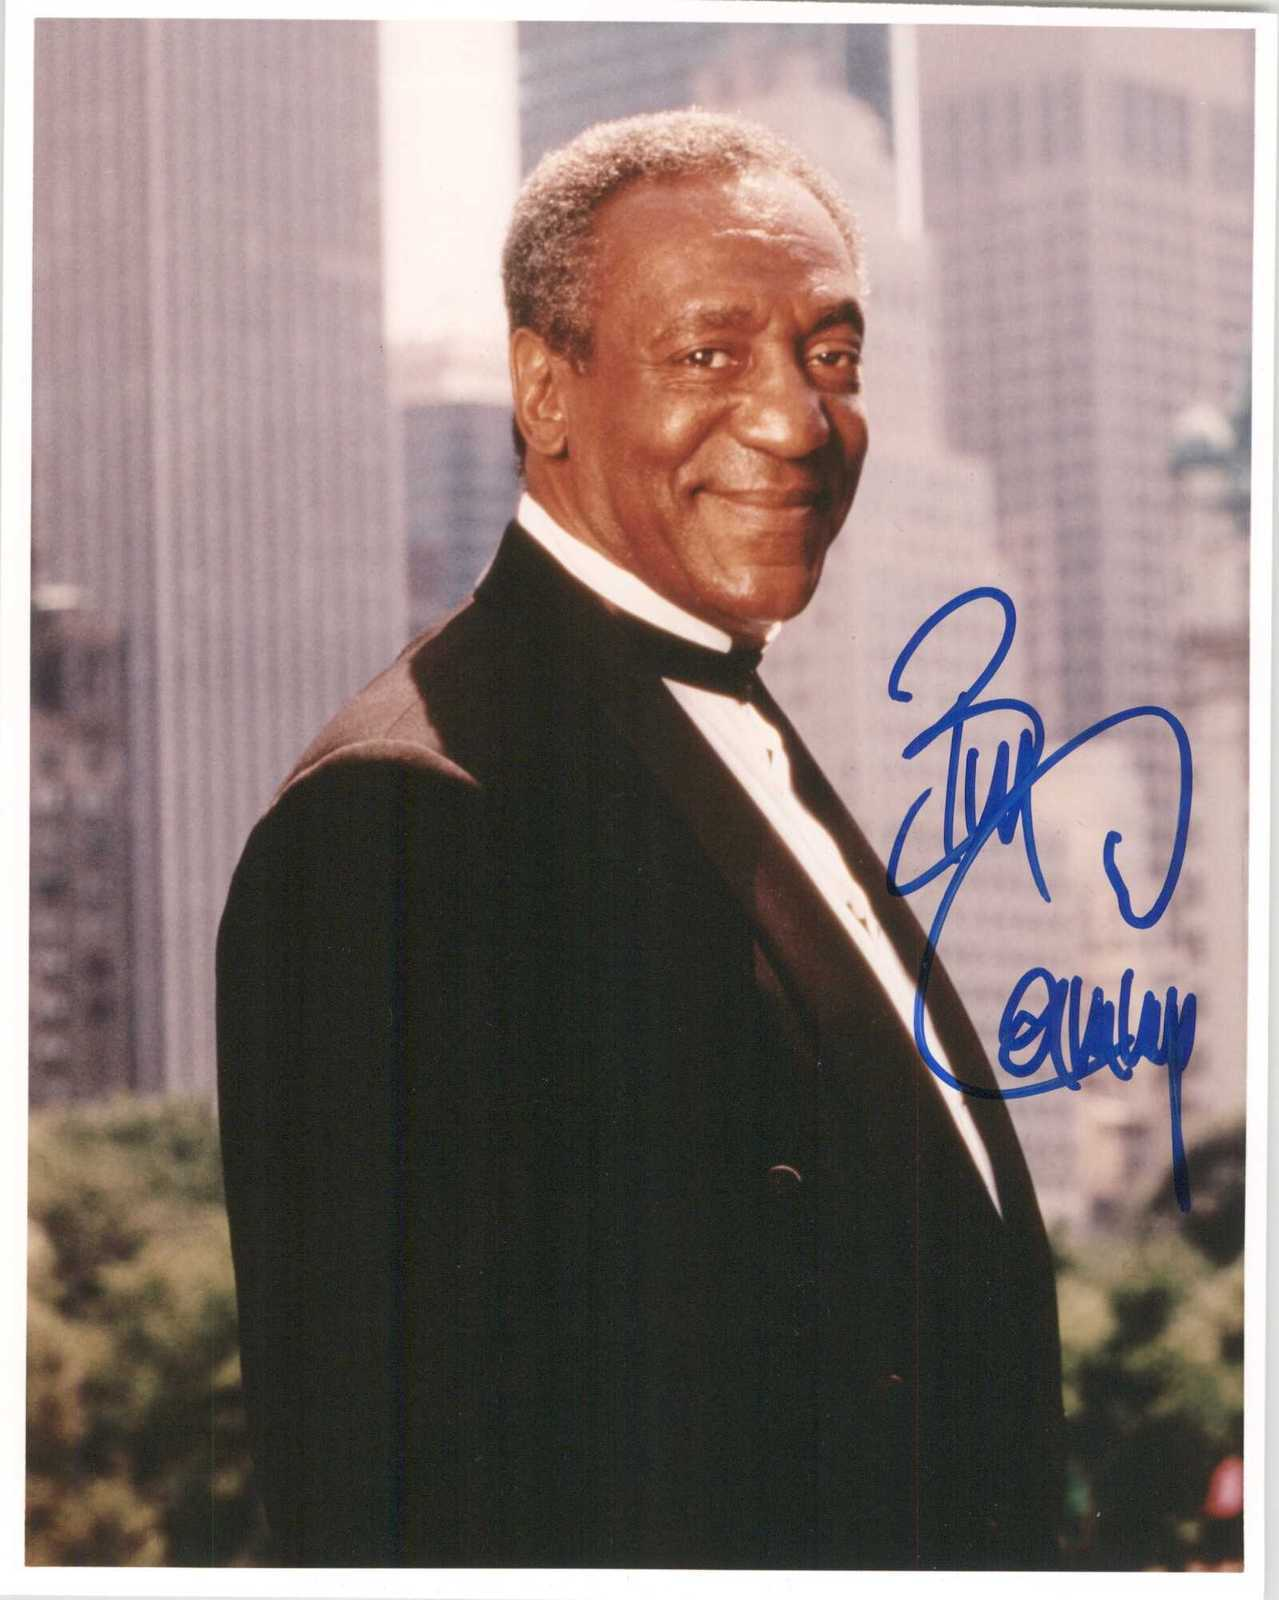 Primary image for Bill Cosby Signed Autographed Glossy 8x10 Photo